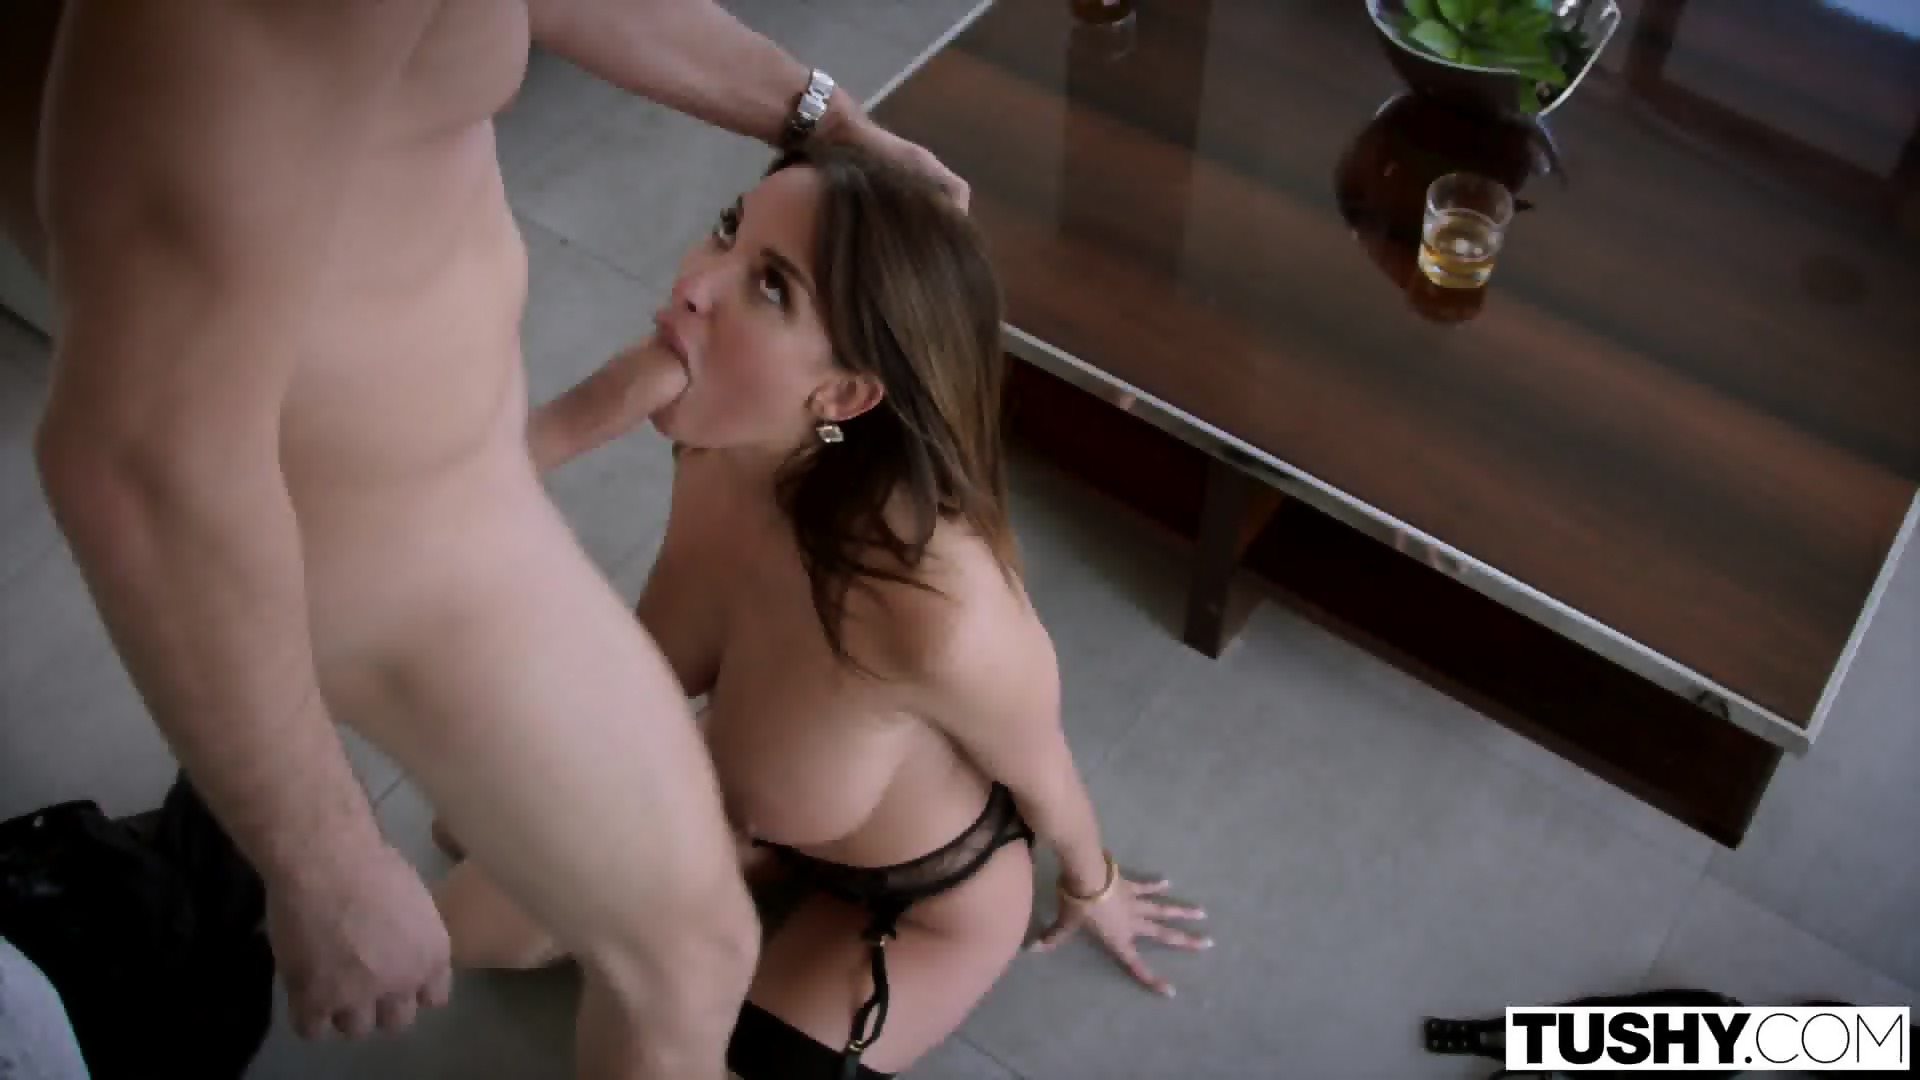 Bad pussy and sex bomb